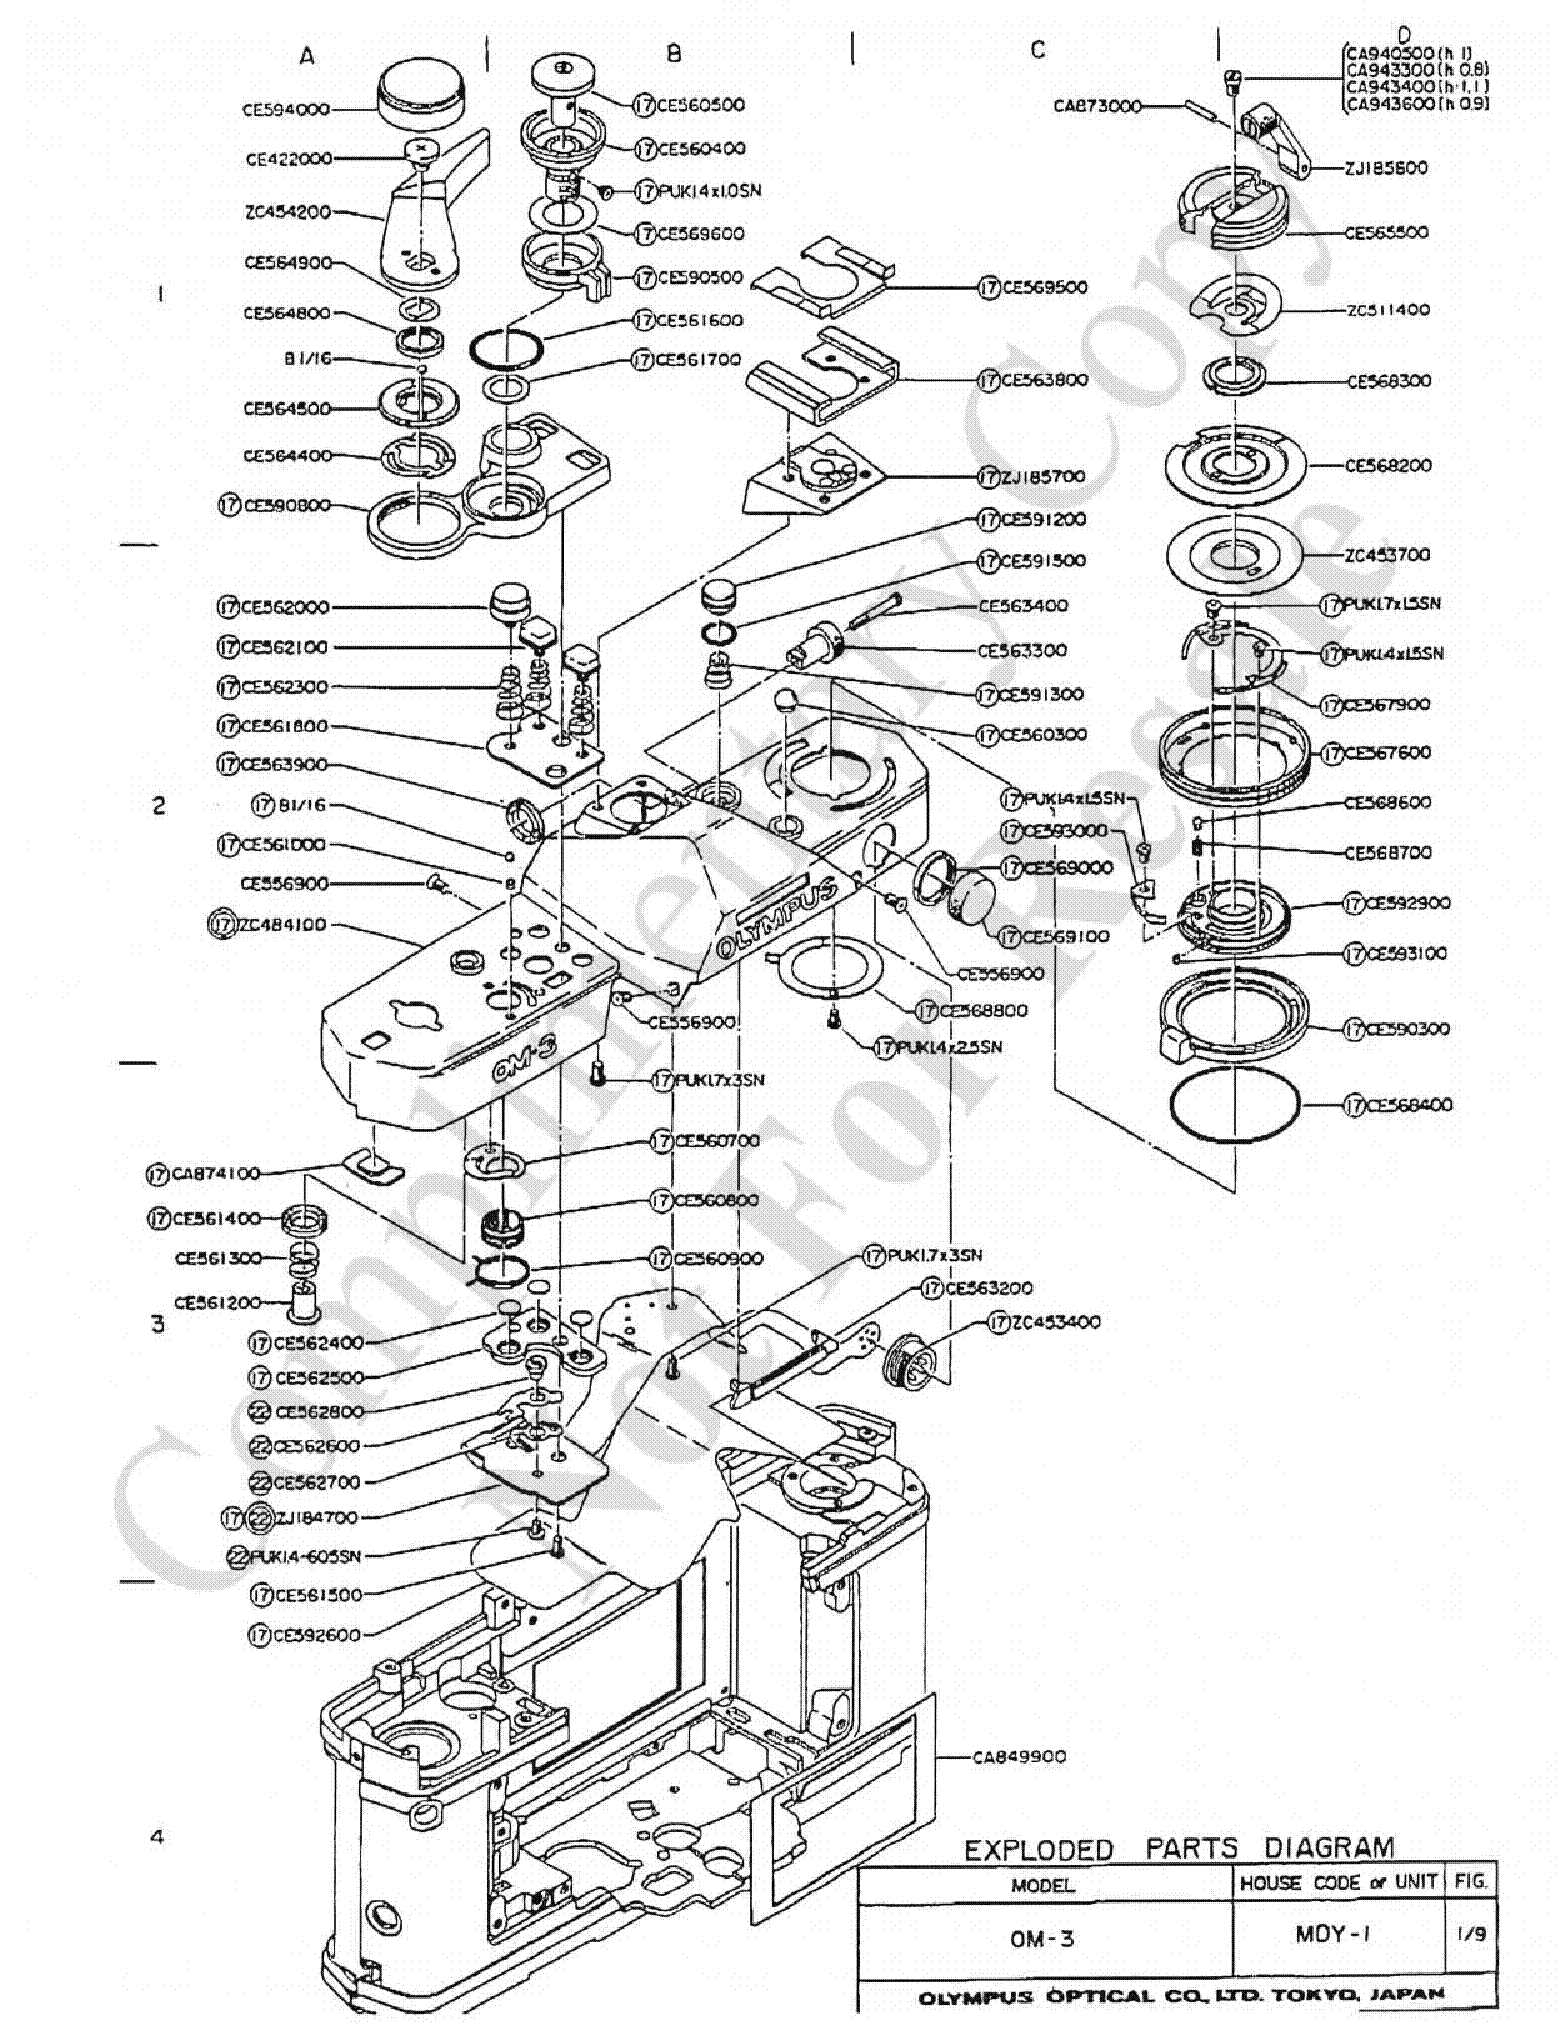 Pin Exploded Parts Diagram Link